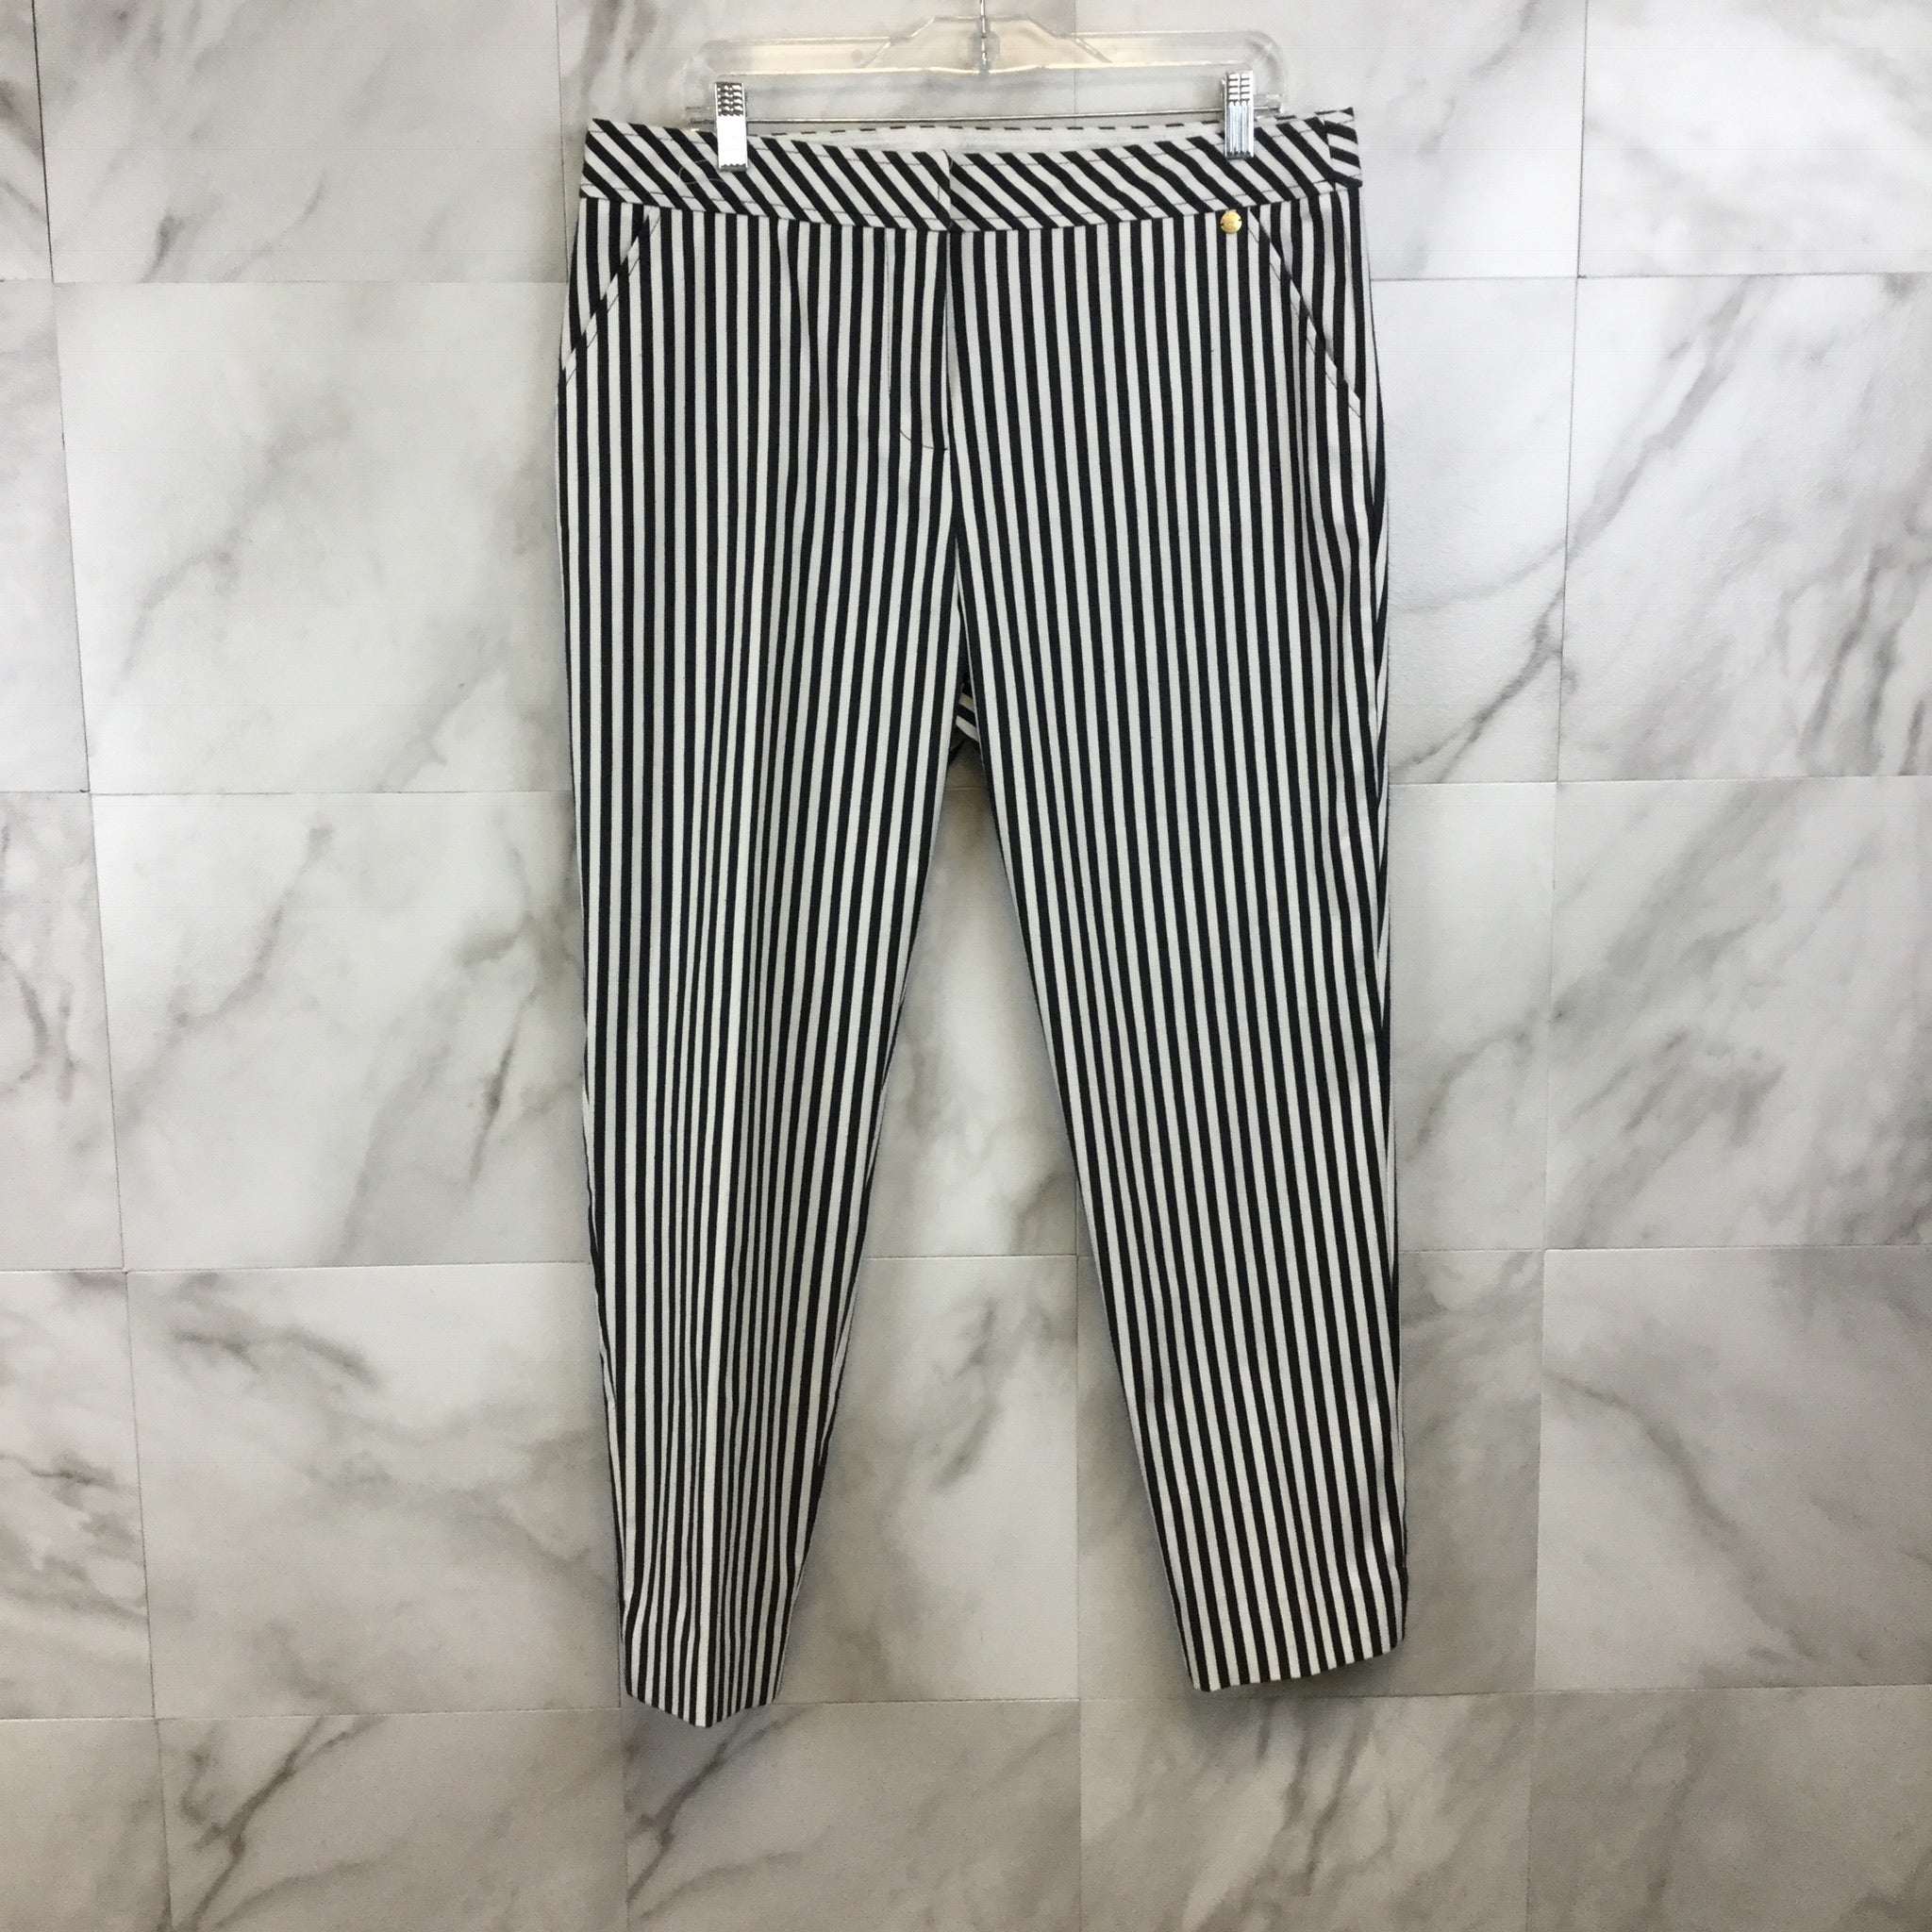 Trina Turk Striped Pants - size 12